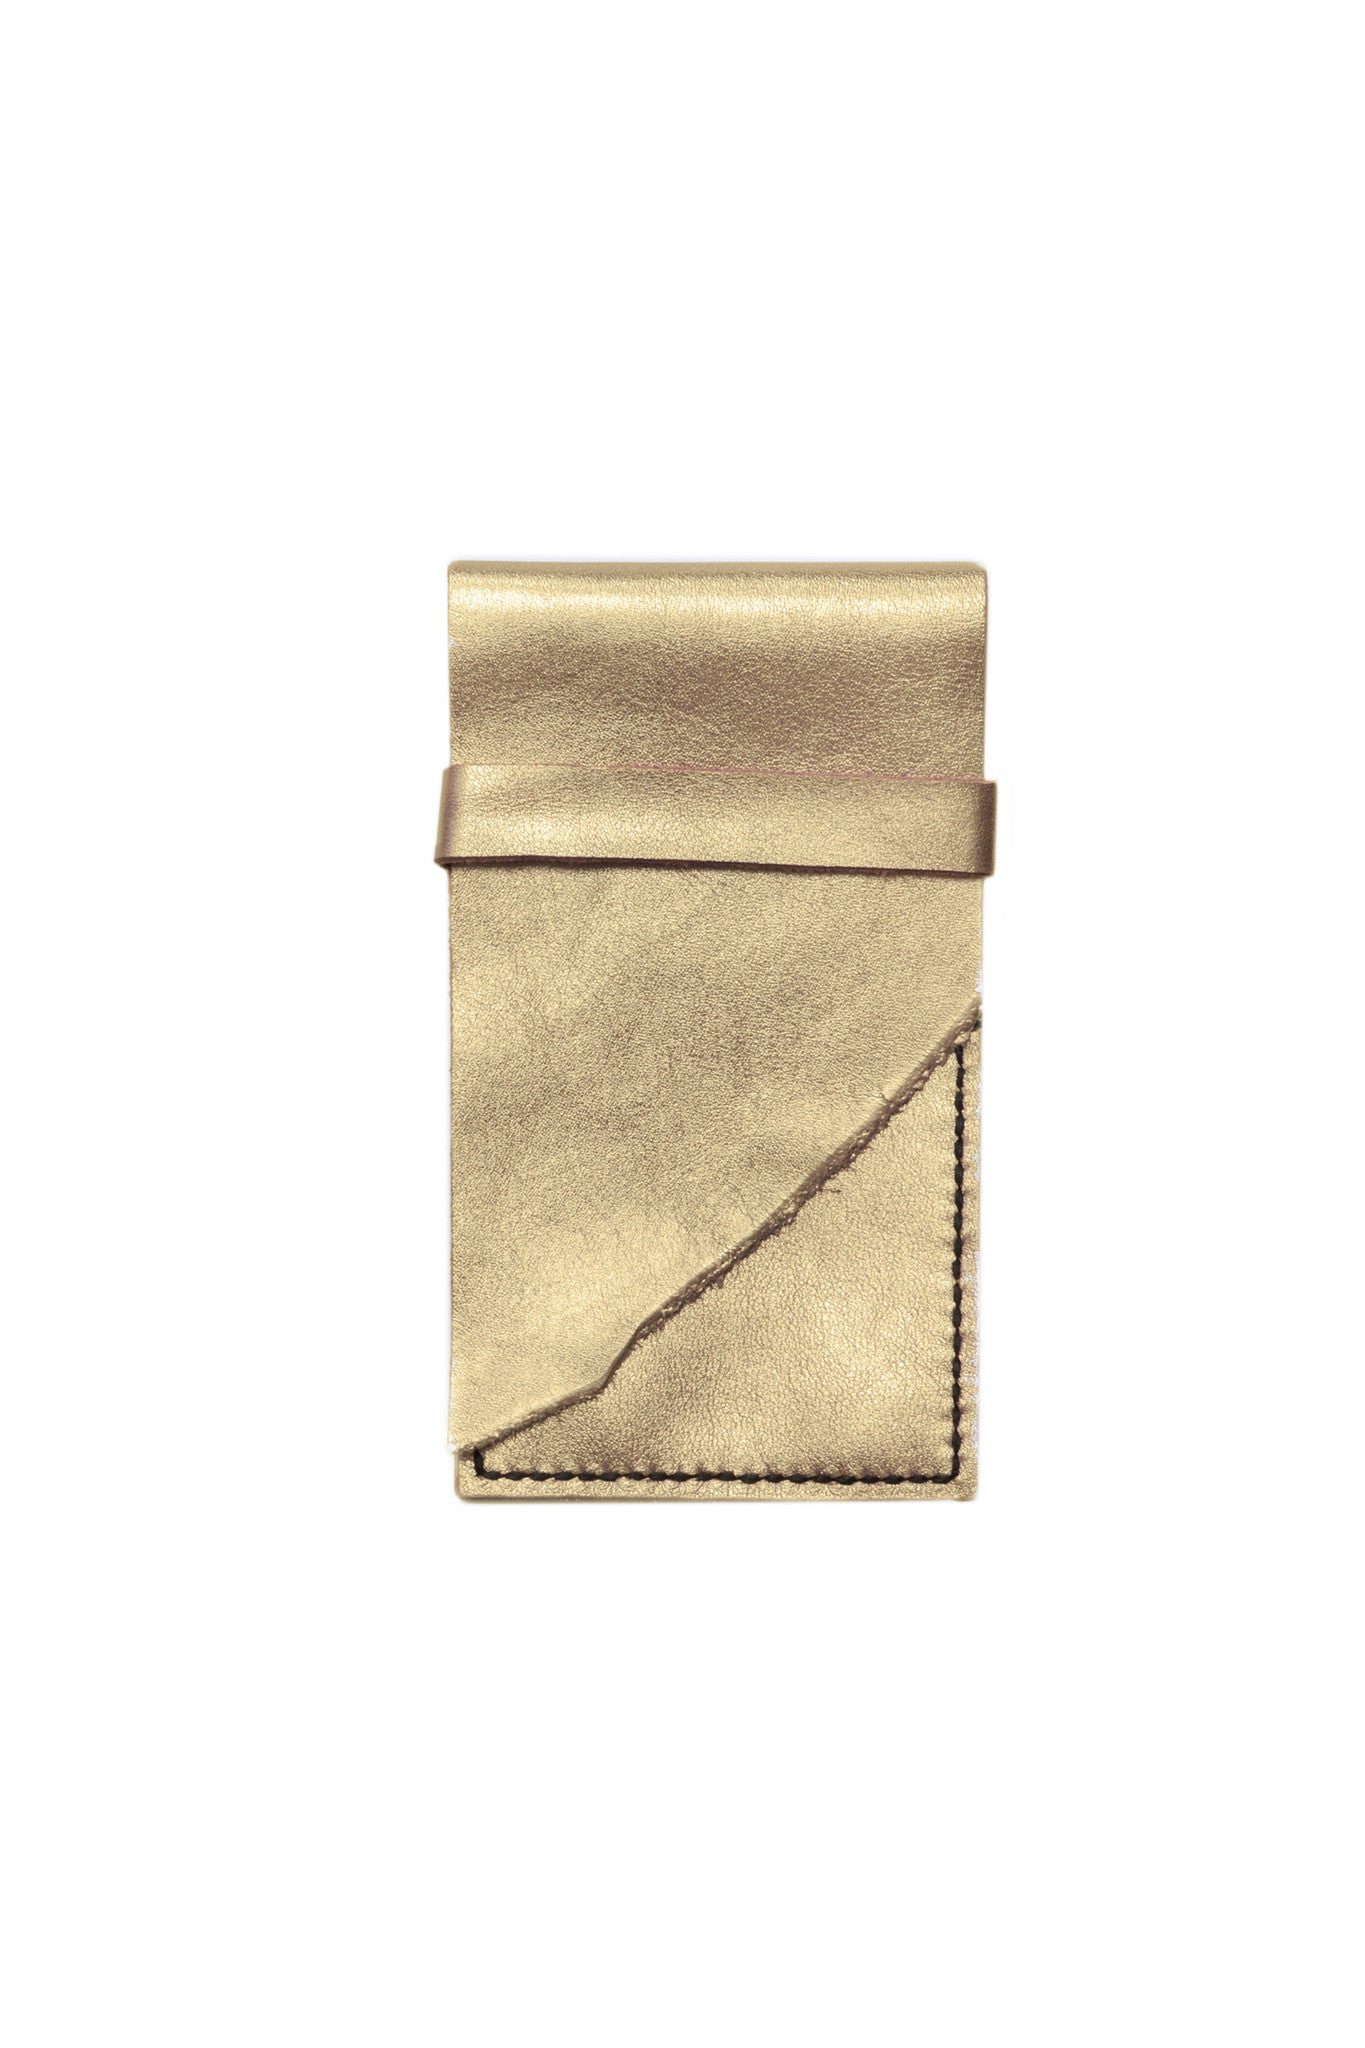 Stella Gold & Black Leather Raw iPhone Sleeve by Liana Rosa